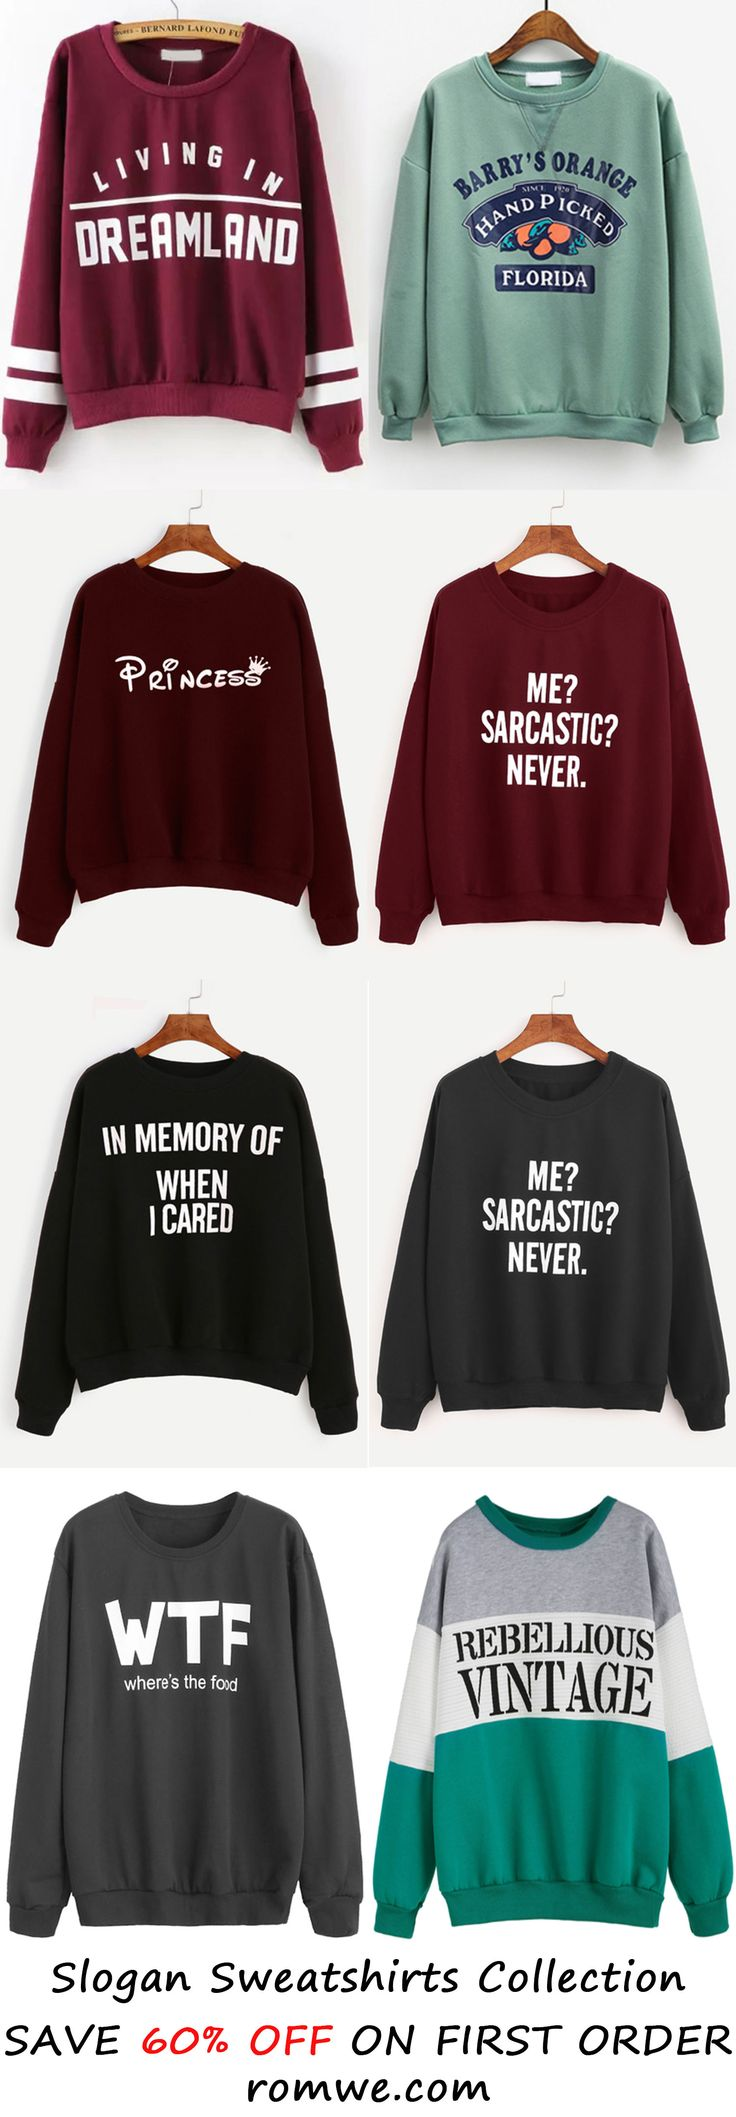 Up to 90% Off - Slogan Sweatshirts from romwe.com http://bellanblue.com